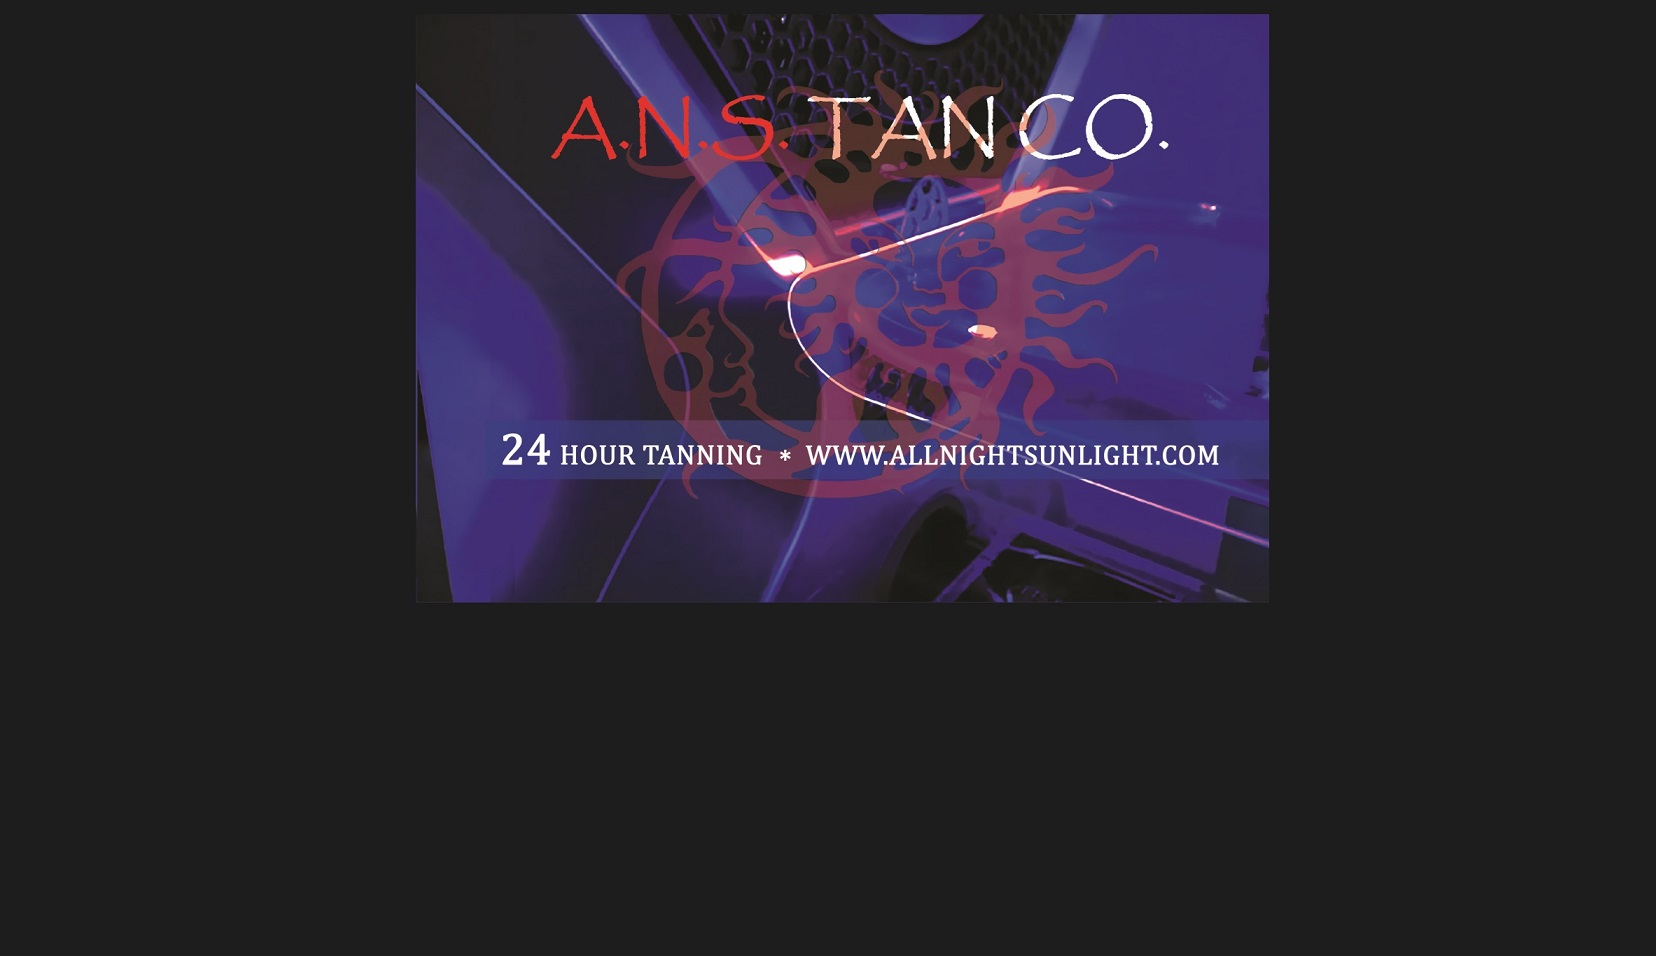 ALL NIGHT SUNLIGHT TAN COMPANY